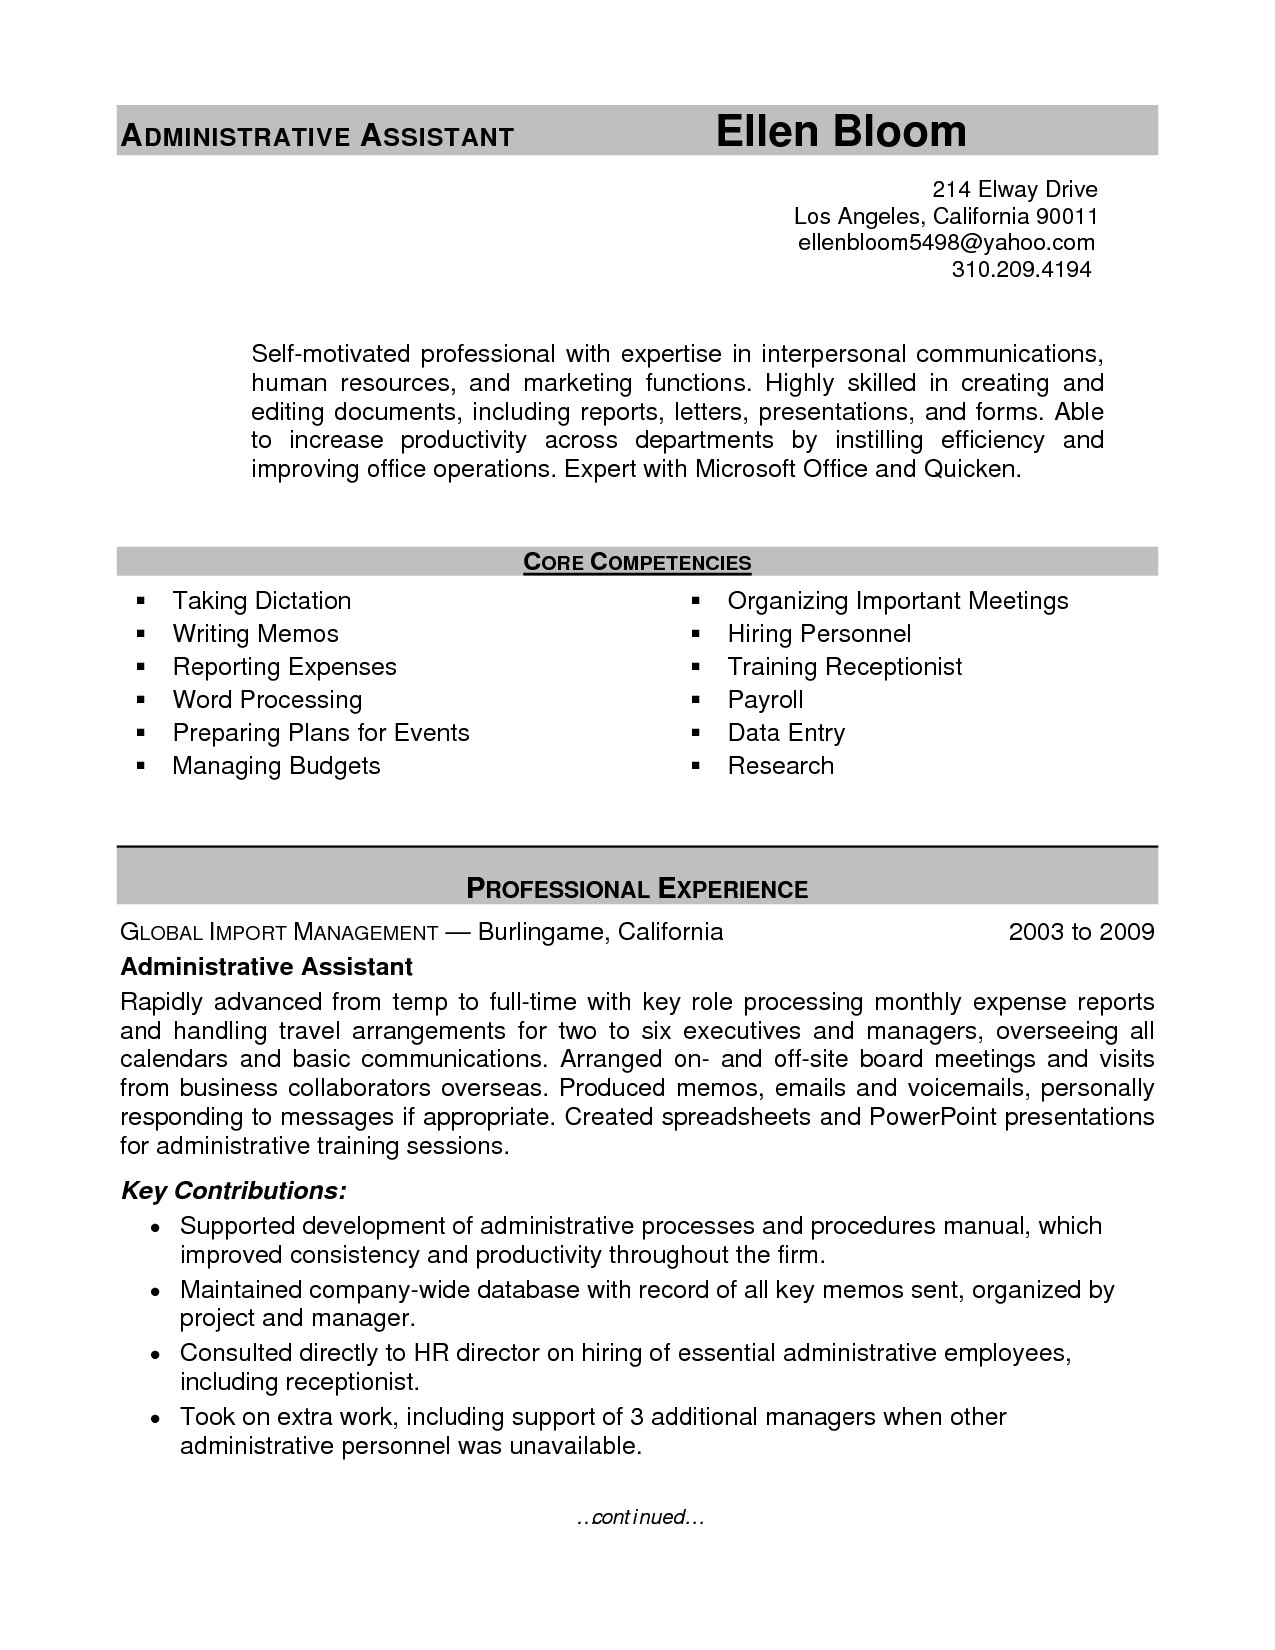 Medical Office Manager Resume Template - 25 Medical Fice Manager Resume Sample